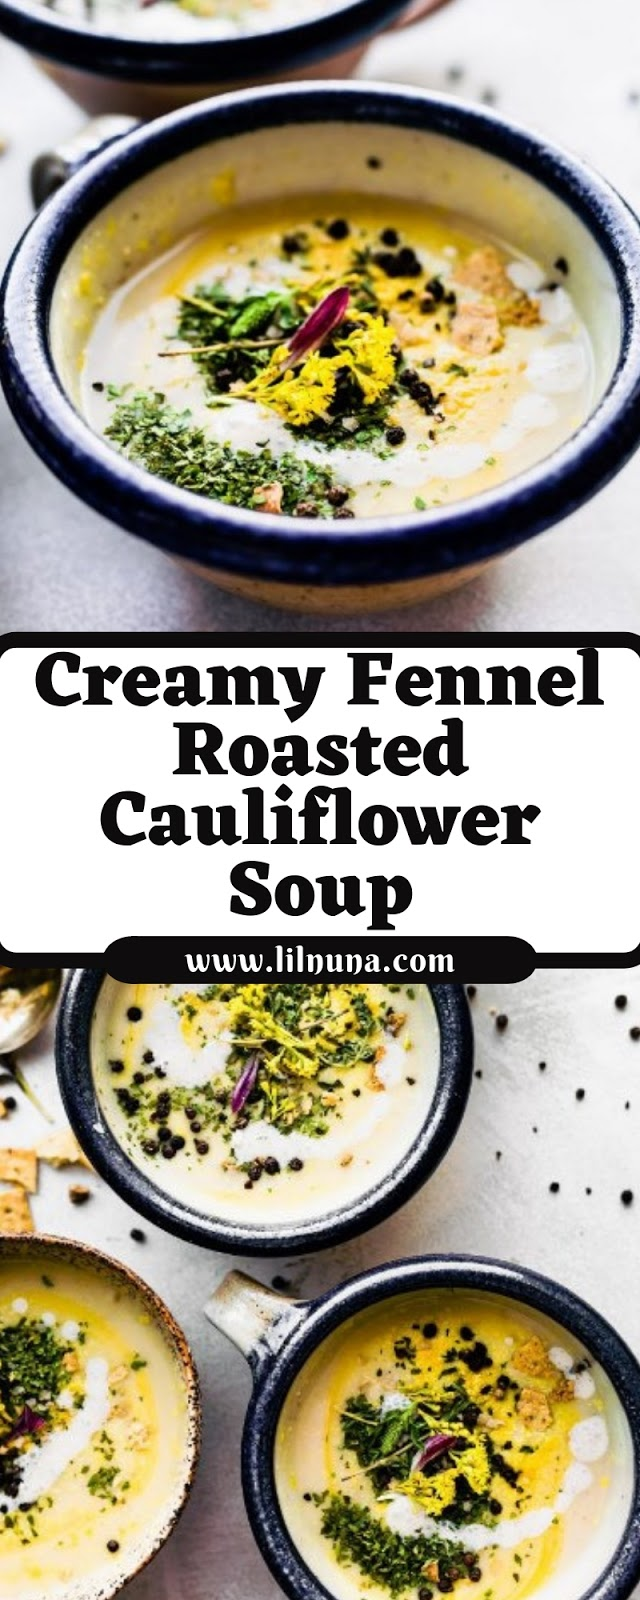 Creamy Fennel Roasted Cauliflower Soup